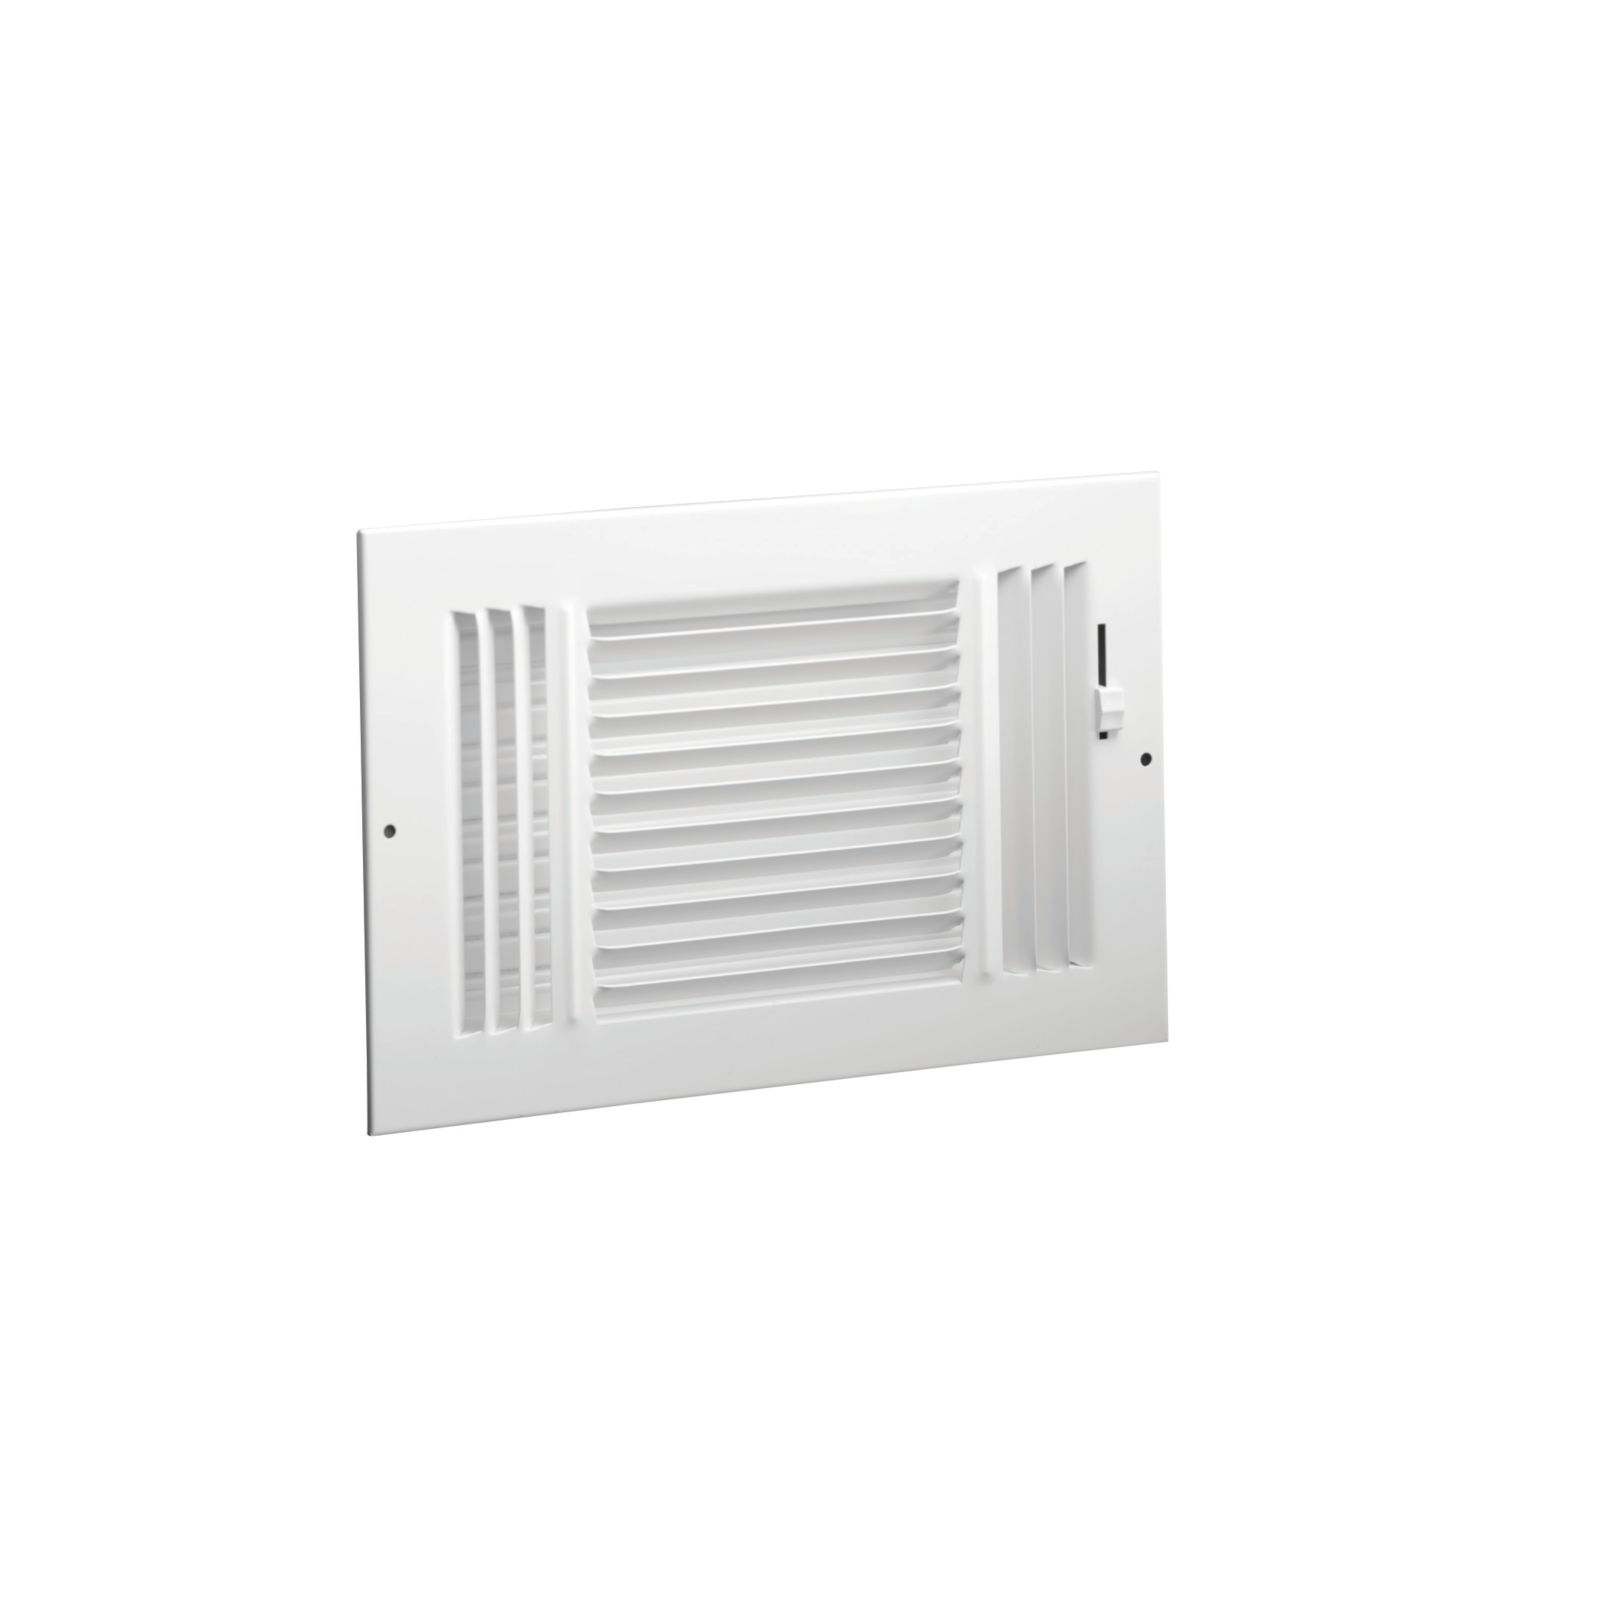 "Hart & Cooley 703925 - #683M Steel 3-Way Sidewall/Ceiling Register, Multi-Shutter Damper with Metal Handle, White, 14"" X 6"""